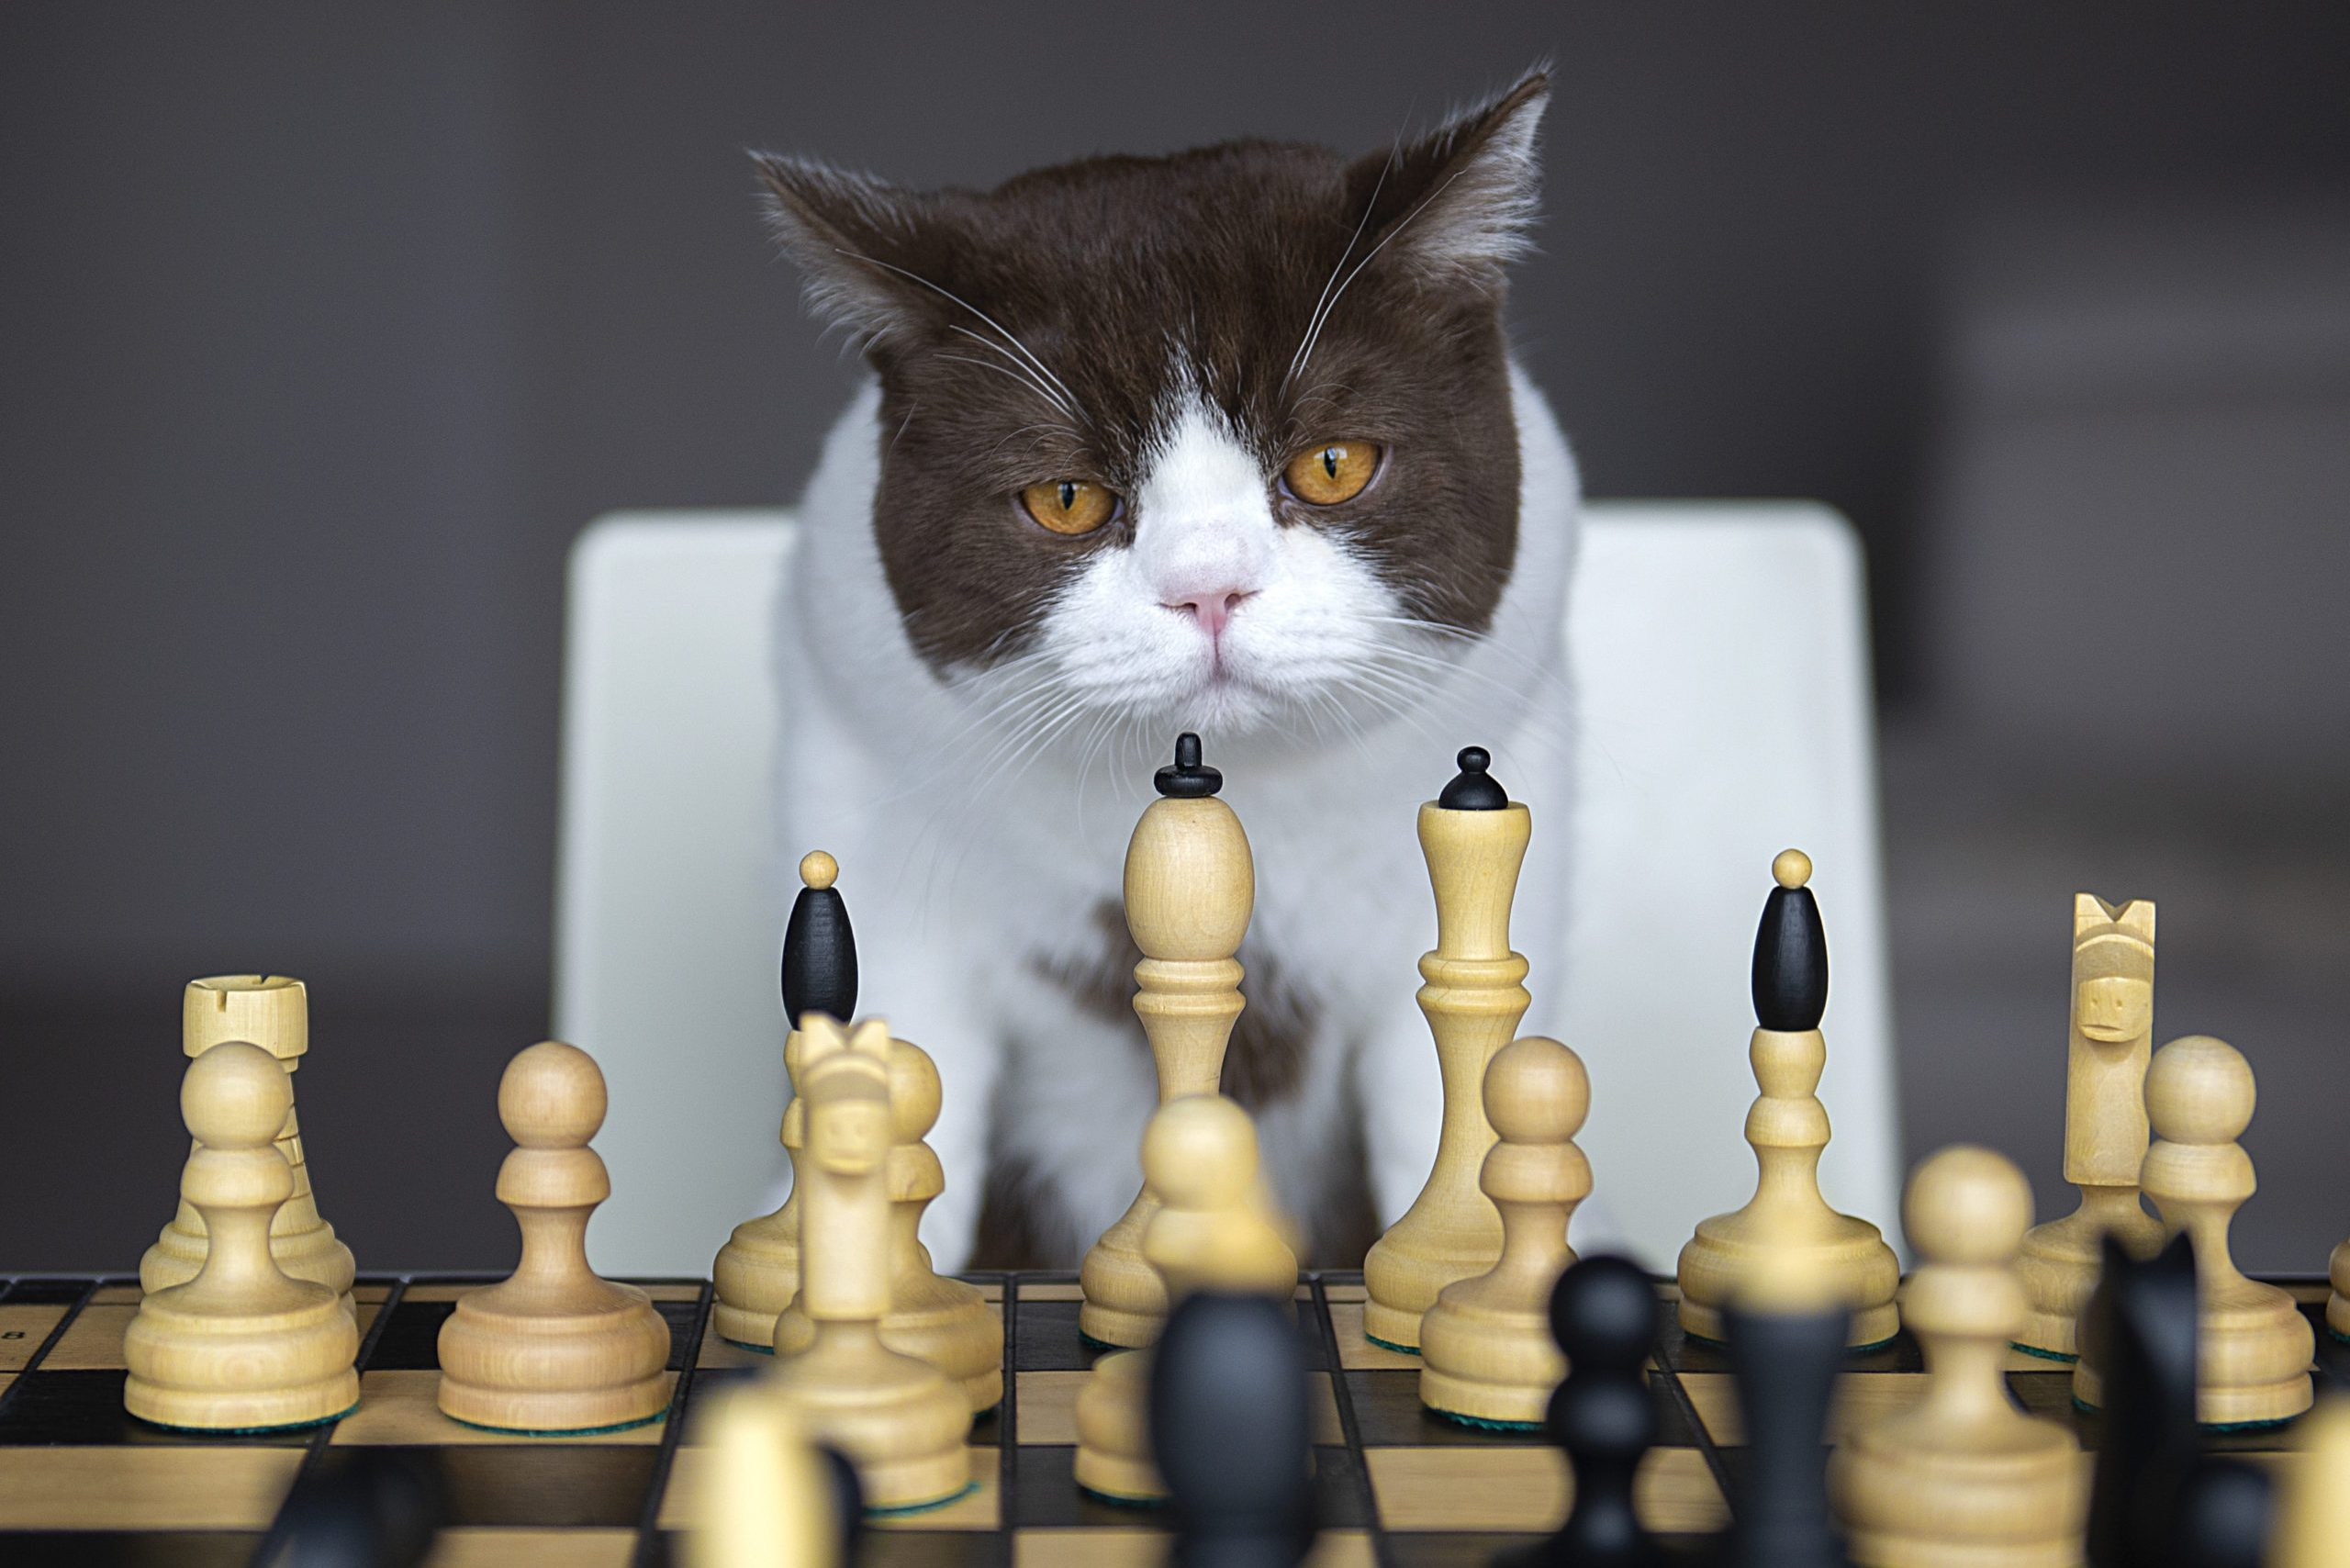 A Serious Cat Is Playing With Me In A Chess At House During The Quarantine Of The Corona Virus